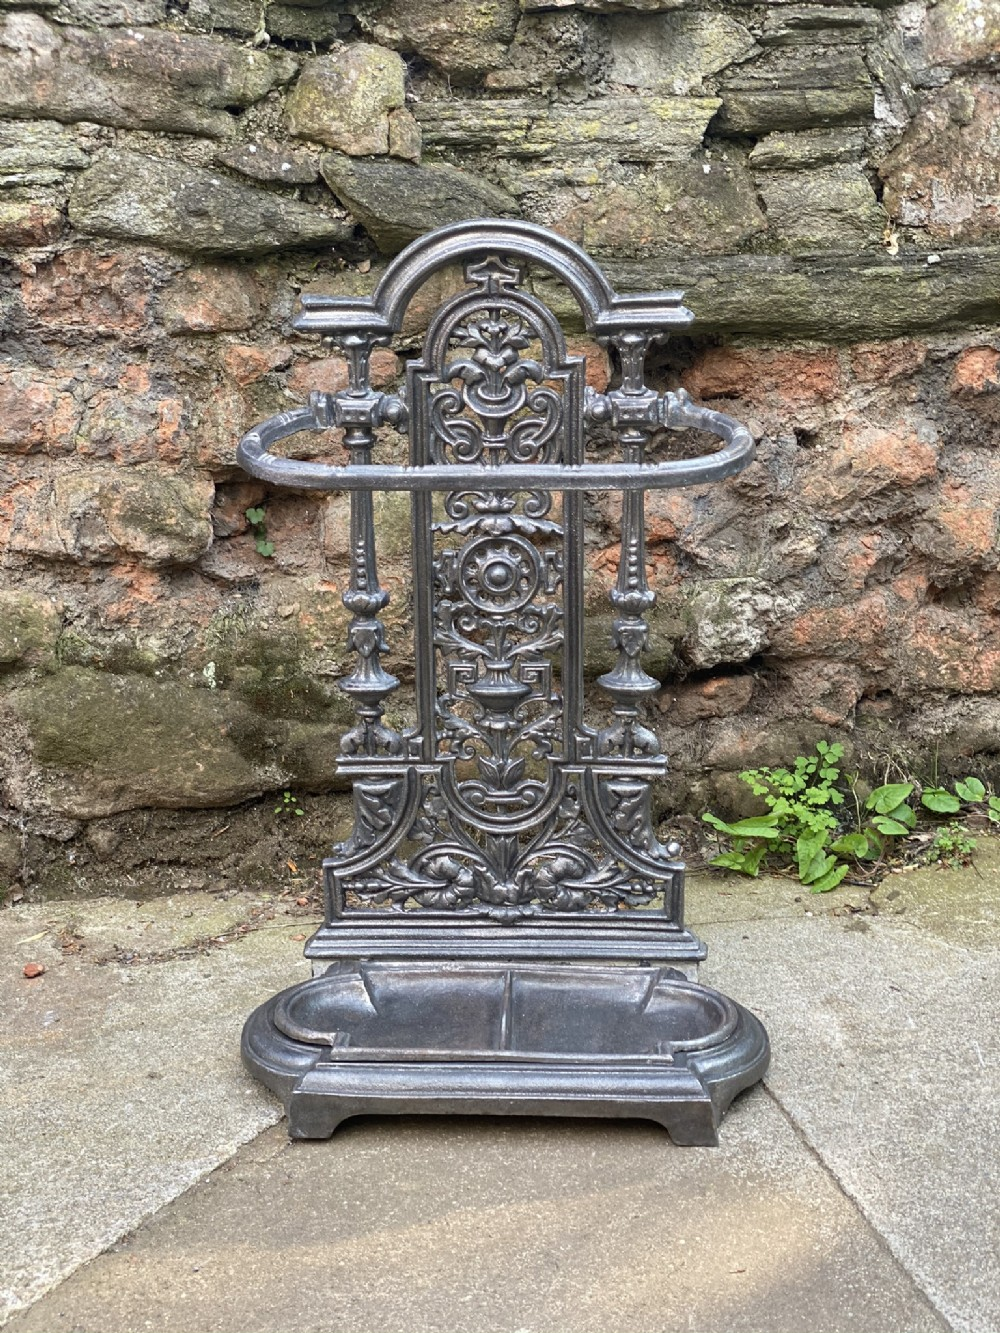 c19th cast iron umbrellastick stand in brushed steel finish